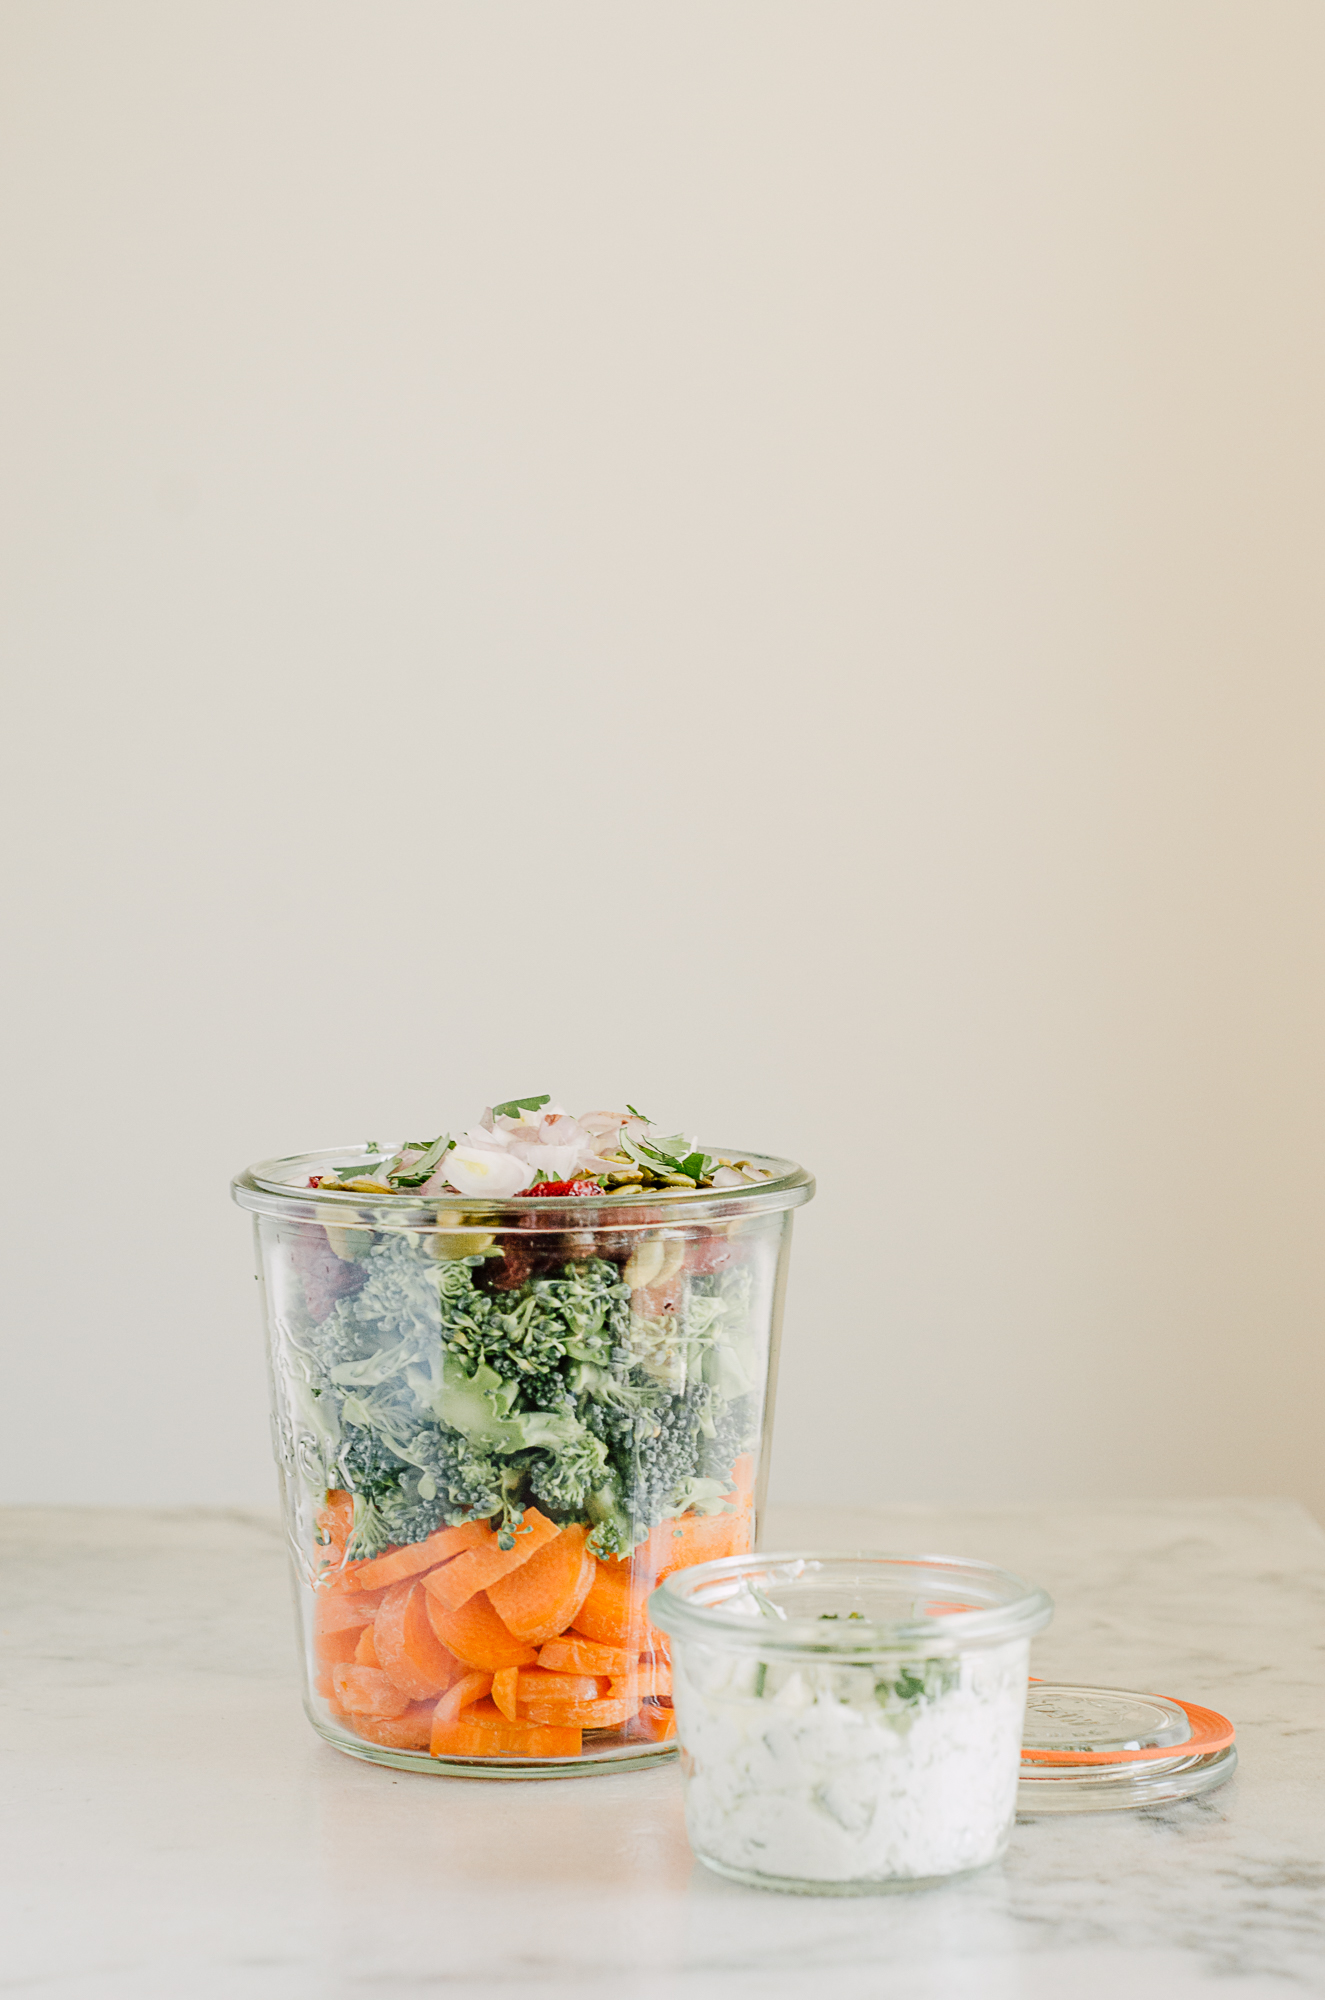 easy lunch salad recipe with a creamy yogurt dressing - the nomadic wife